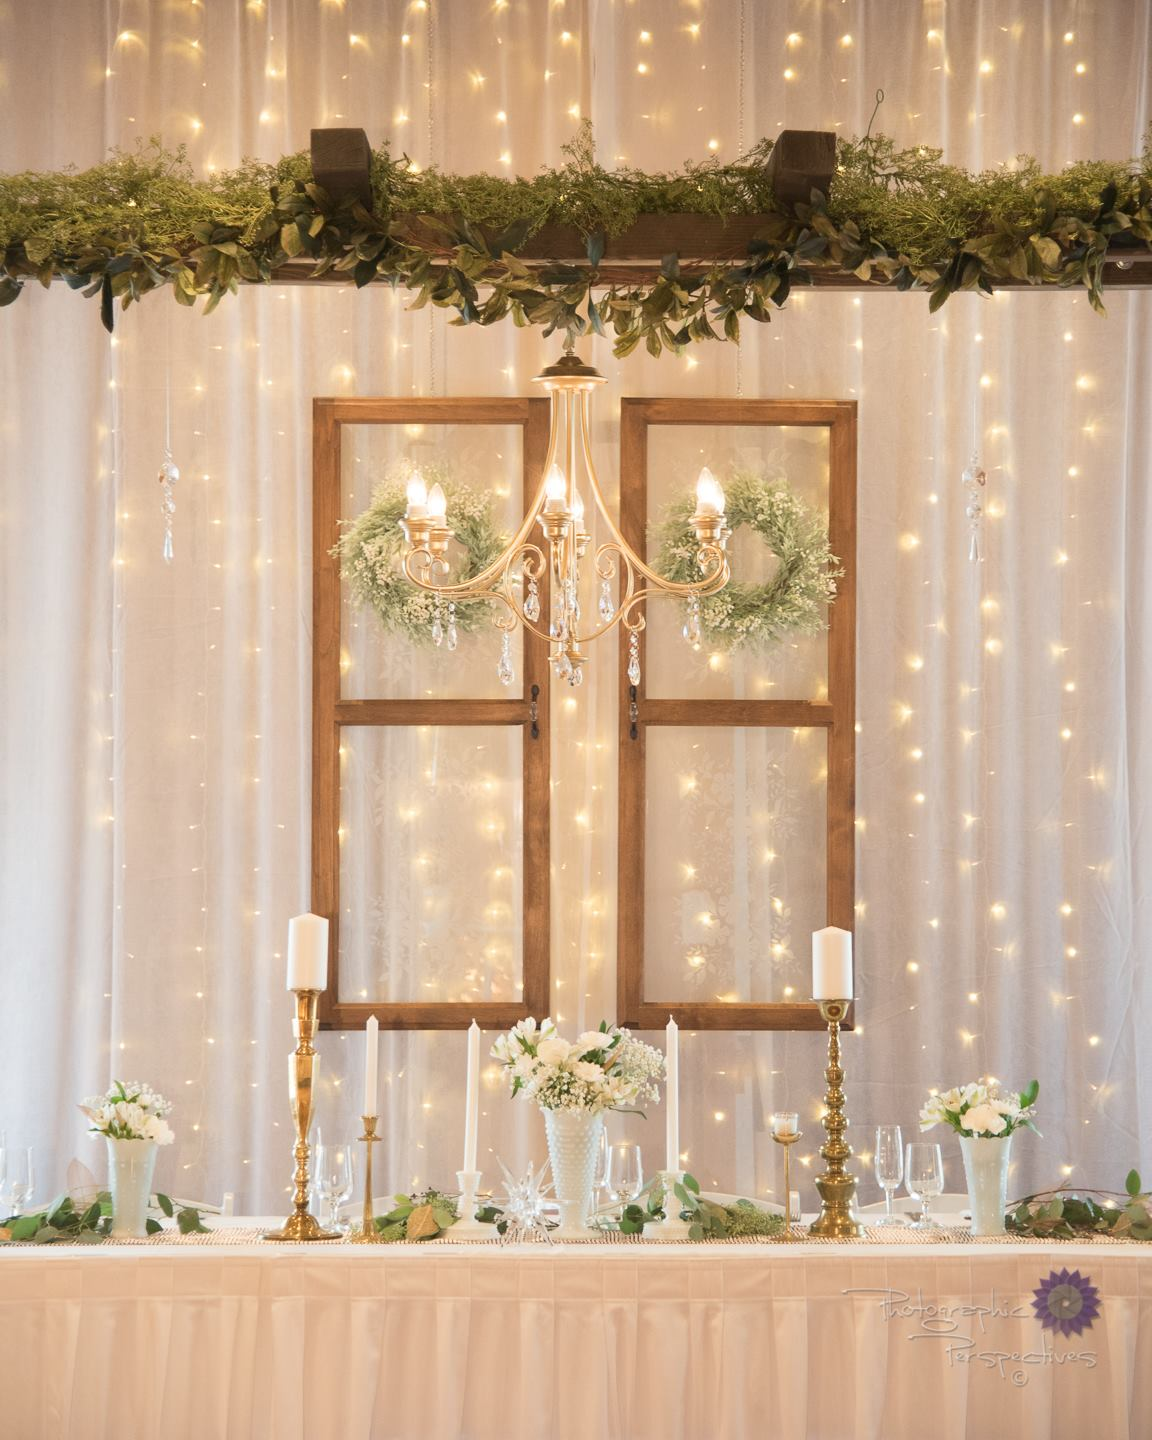 Perfect Wedding Guide planning design inspo ceremony inspiration marriage wedding vows celebration engaged planner tips tricks tablescape decor event New Mexico Albuquerque Santa Fe vintage decor gold greenery natural greek chic elegant trendy